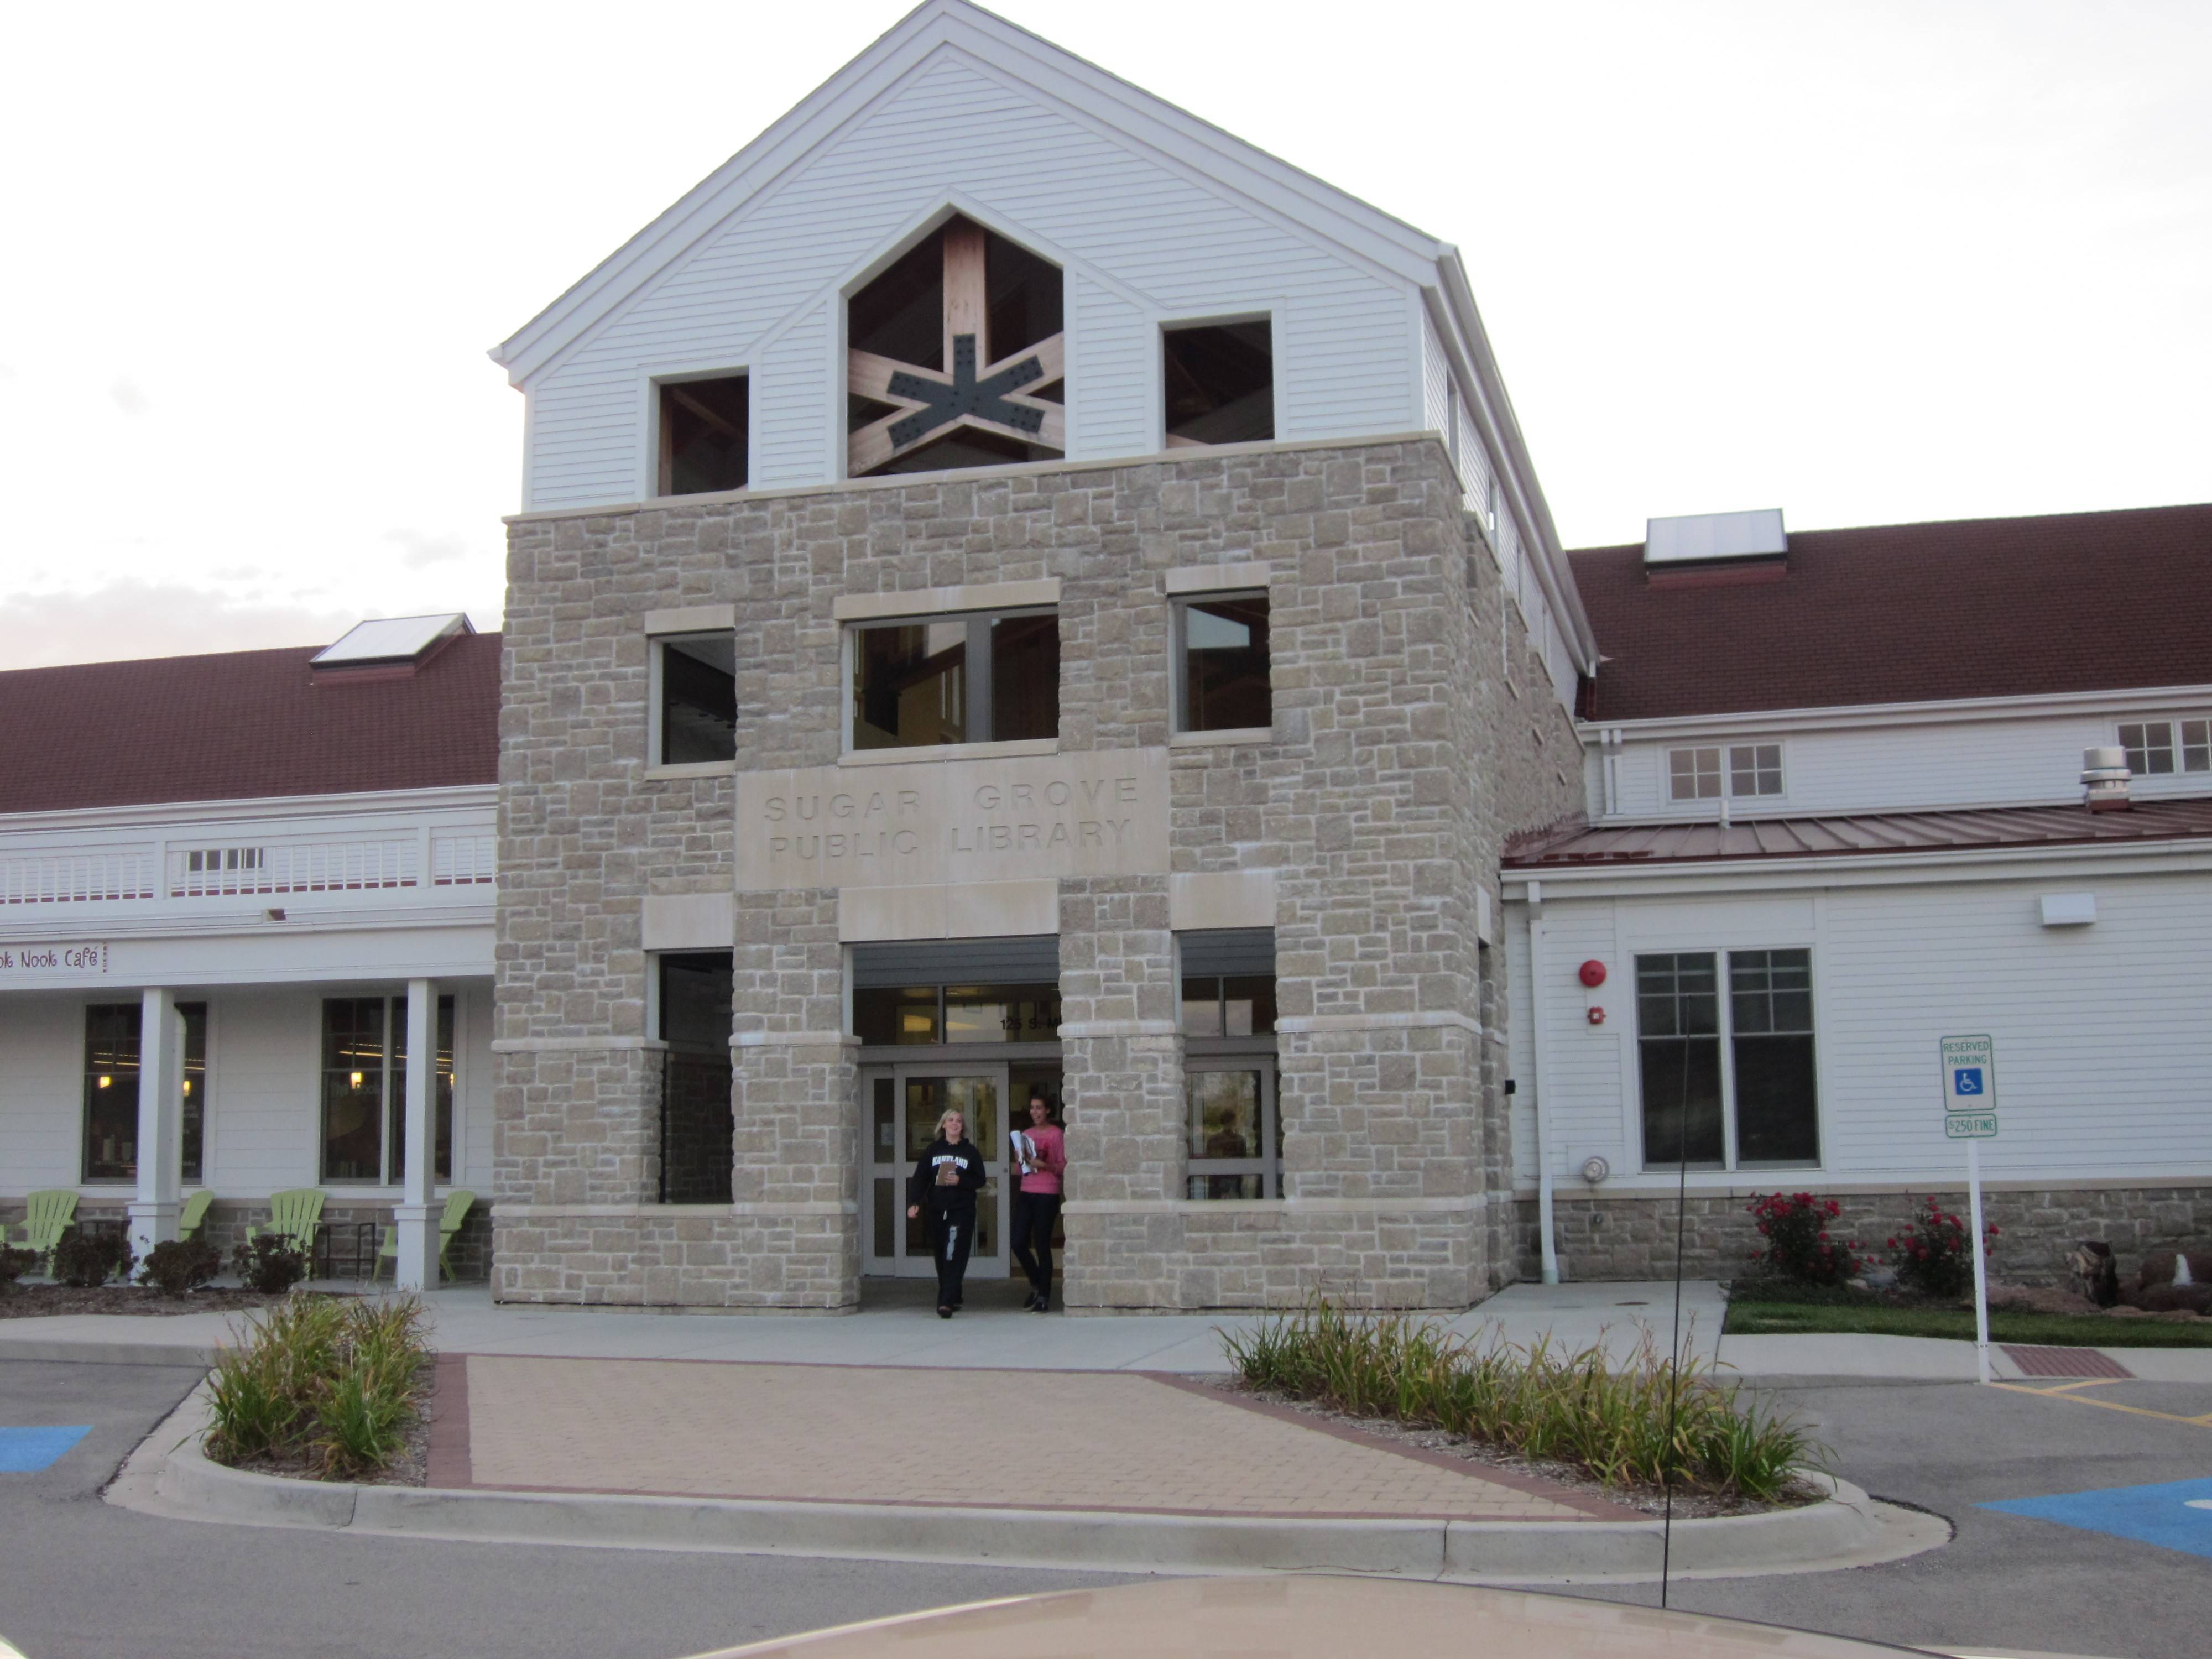 Voters were asked Tuesday for more tax money to operate the Sugar Grove Public Library, but the proposal was rejected.